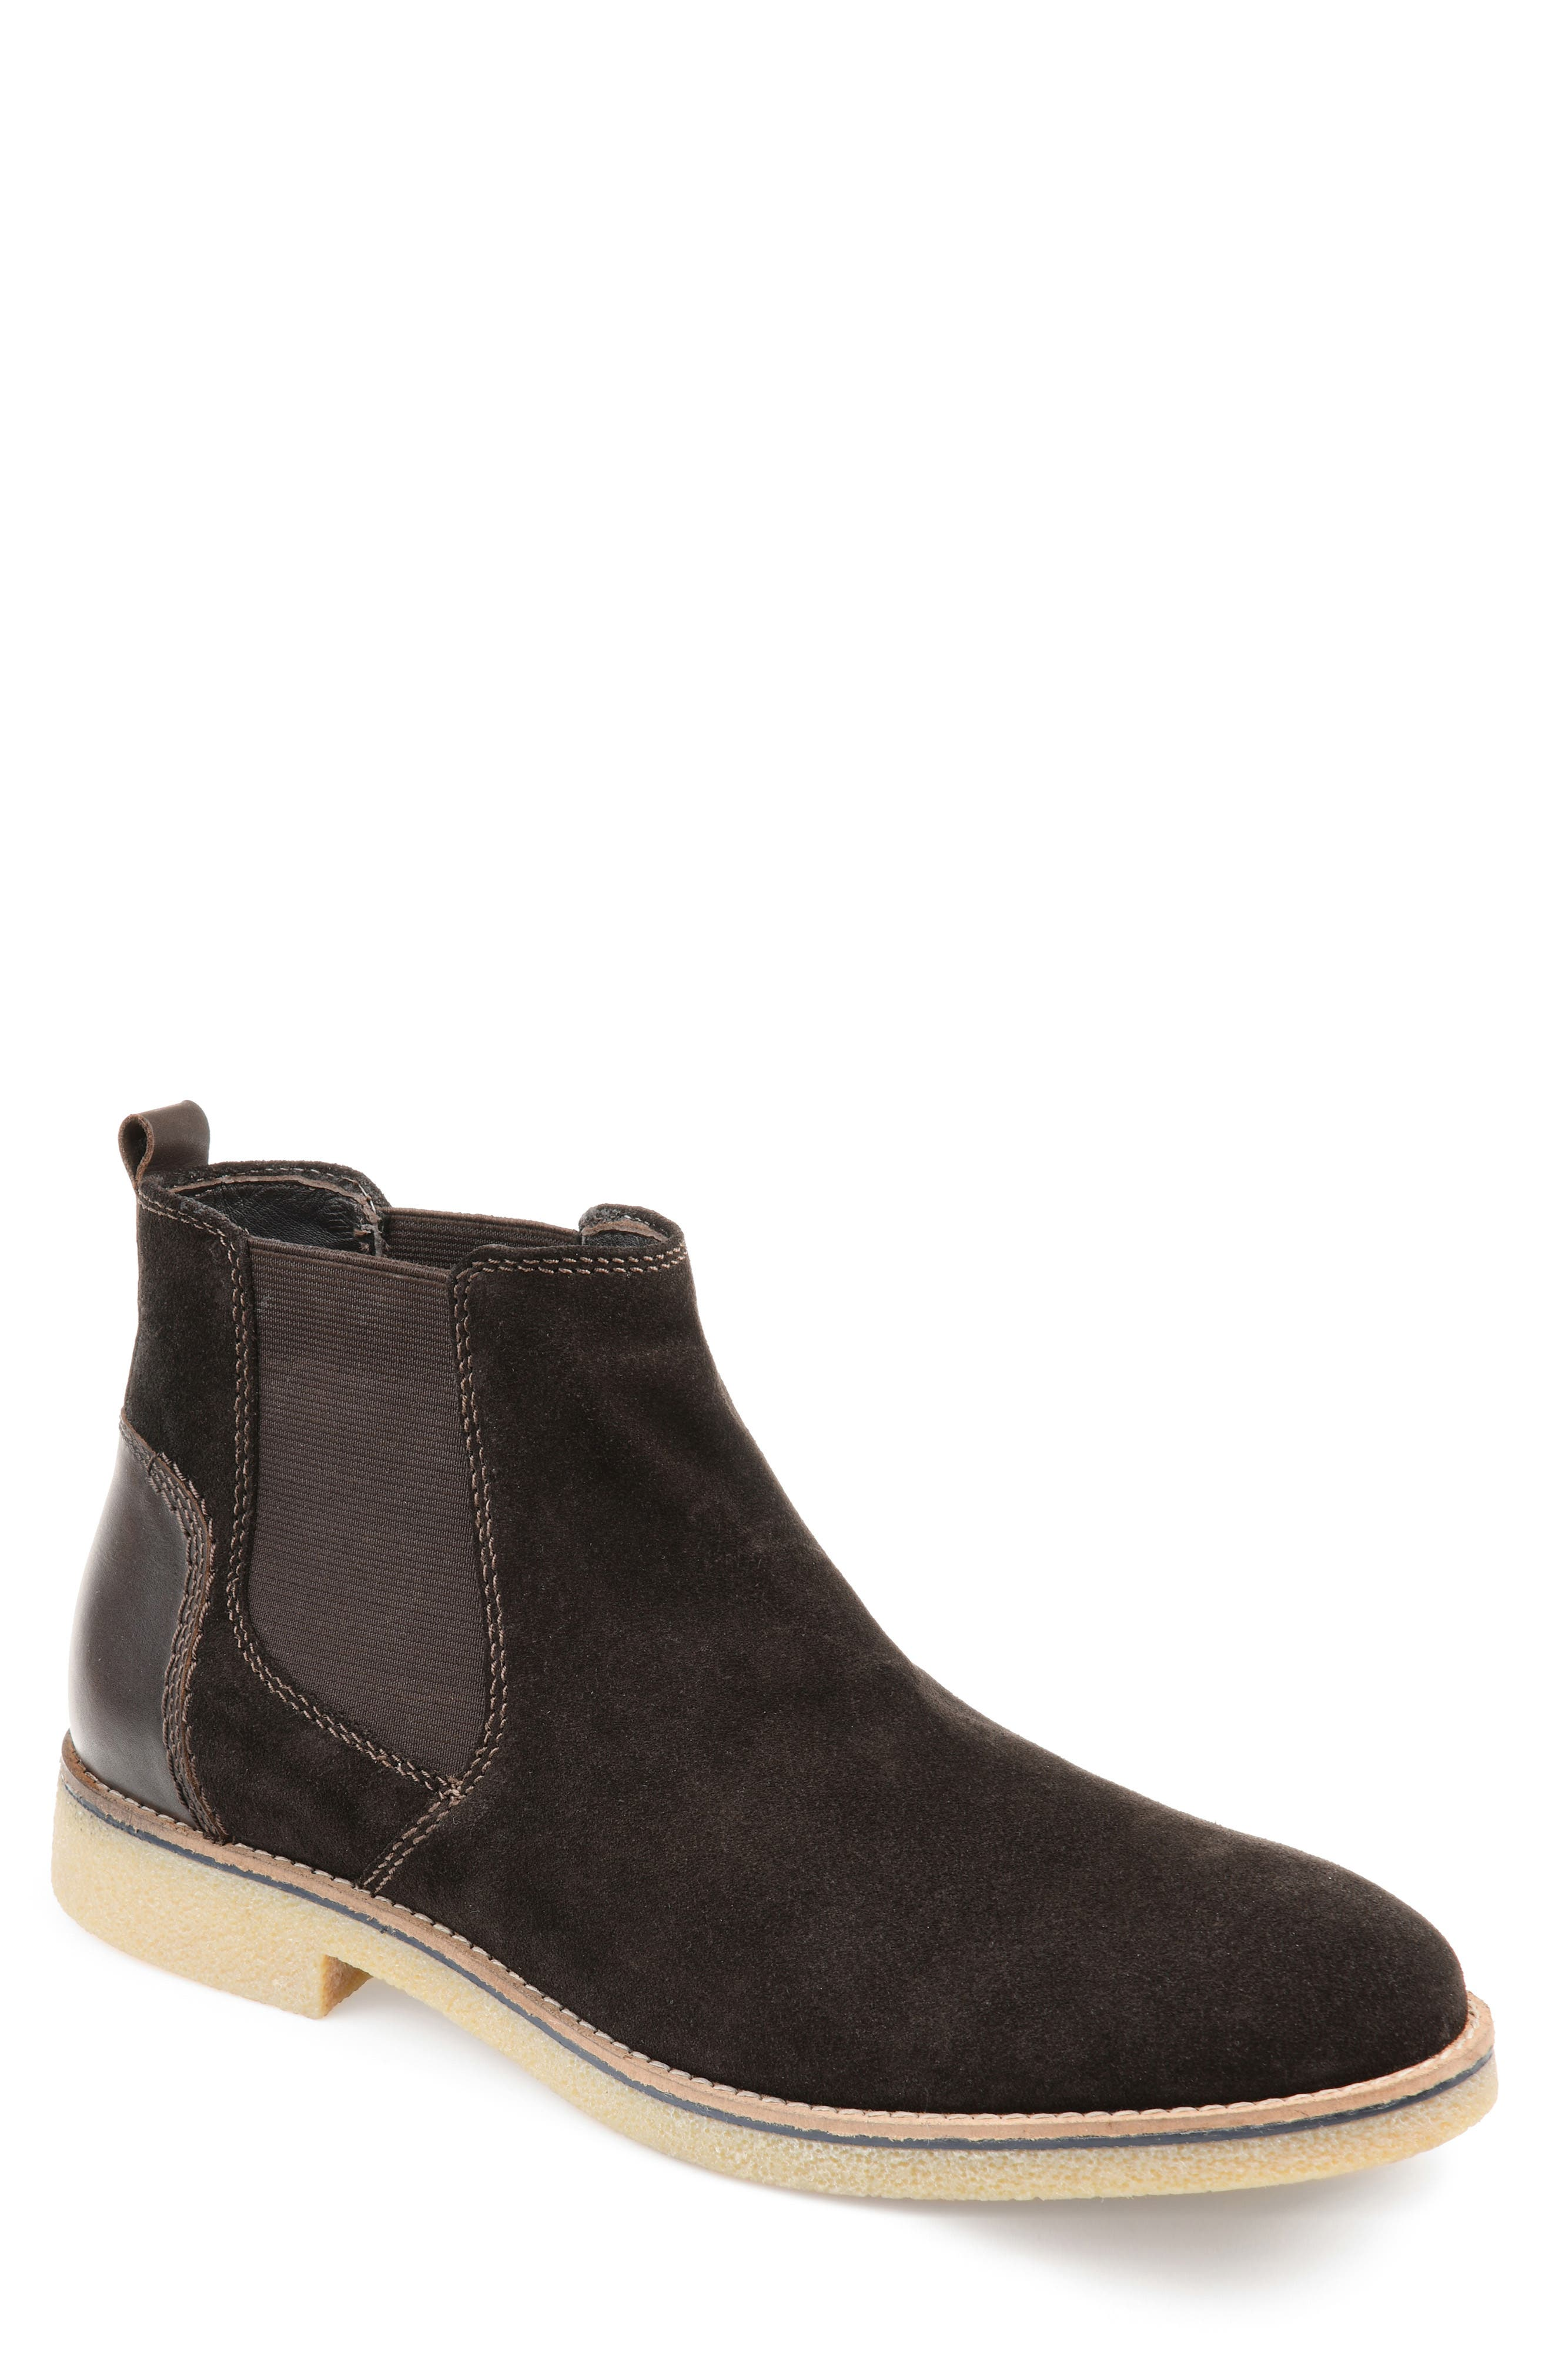 A crepe rubber sole furthers the casual, comfortable attitude of a Chelsea boot cut from soft suede with a deeply gored shaft and a polished patch at the heel. Style Name: Thomas & Vine Hendrix Chelsea Boot (Men). Style Number: 5715649. Available in stores.